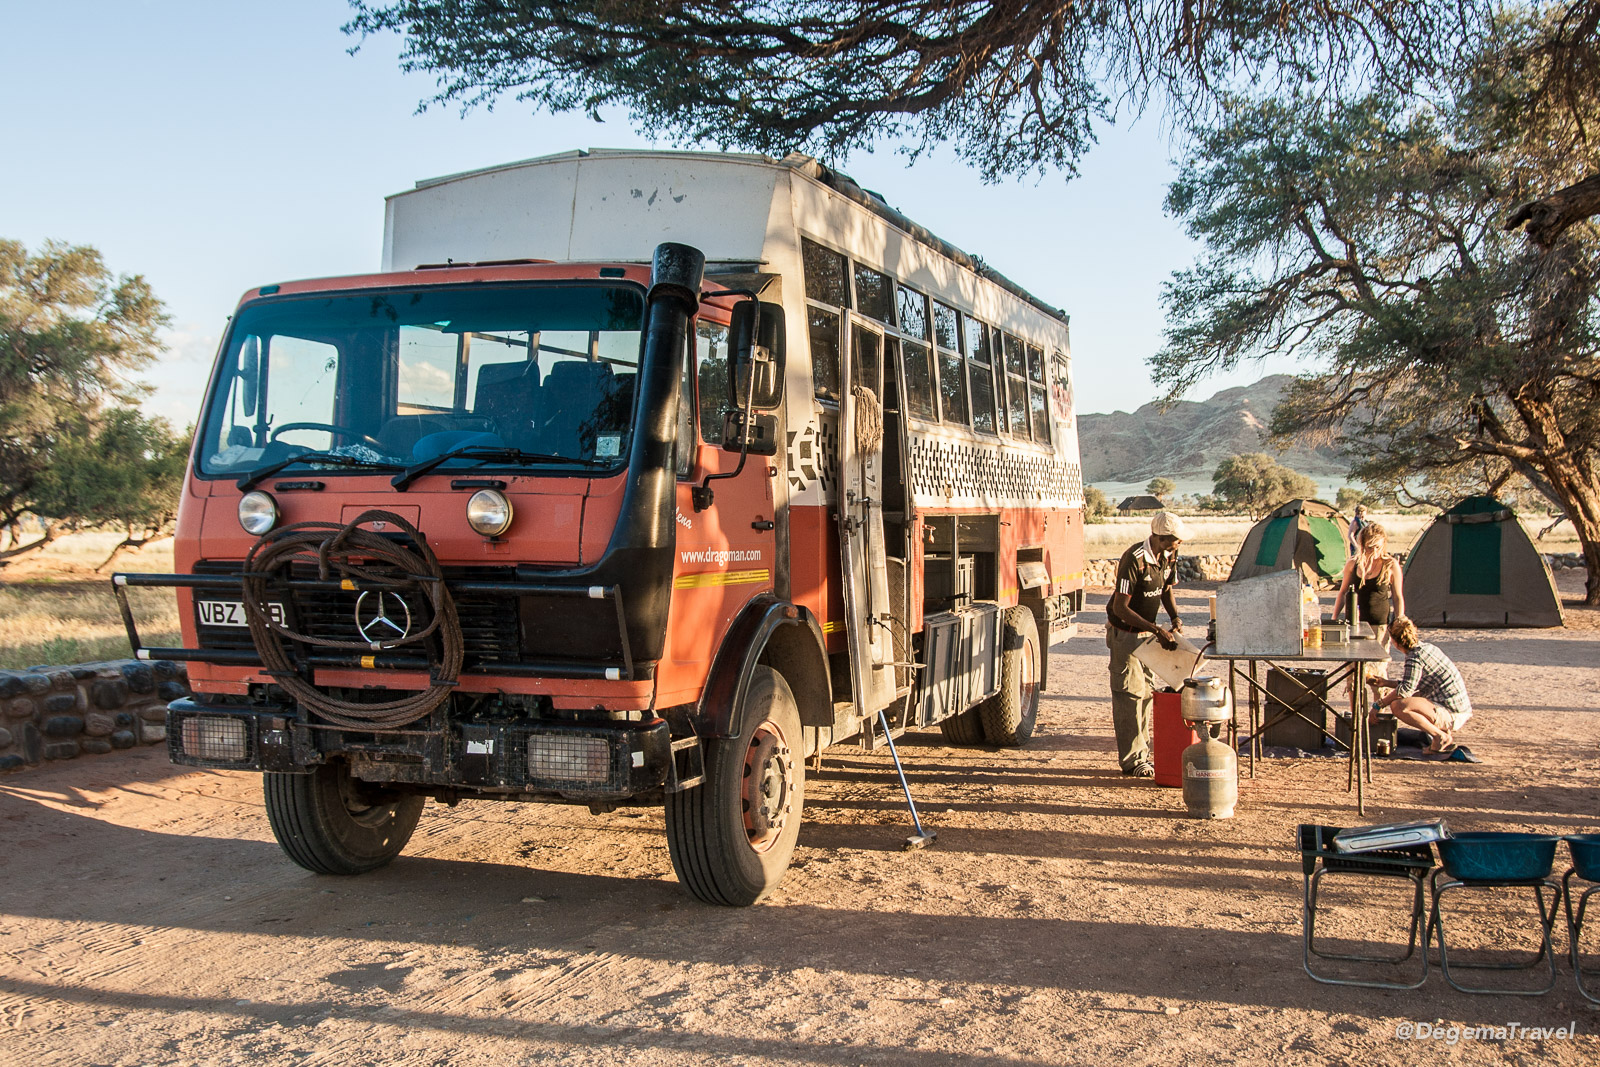 Our Dragoman truck at the campsite near Sesriem, Namibia